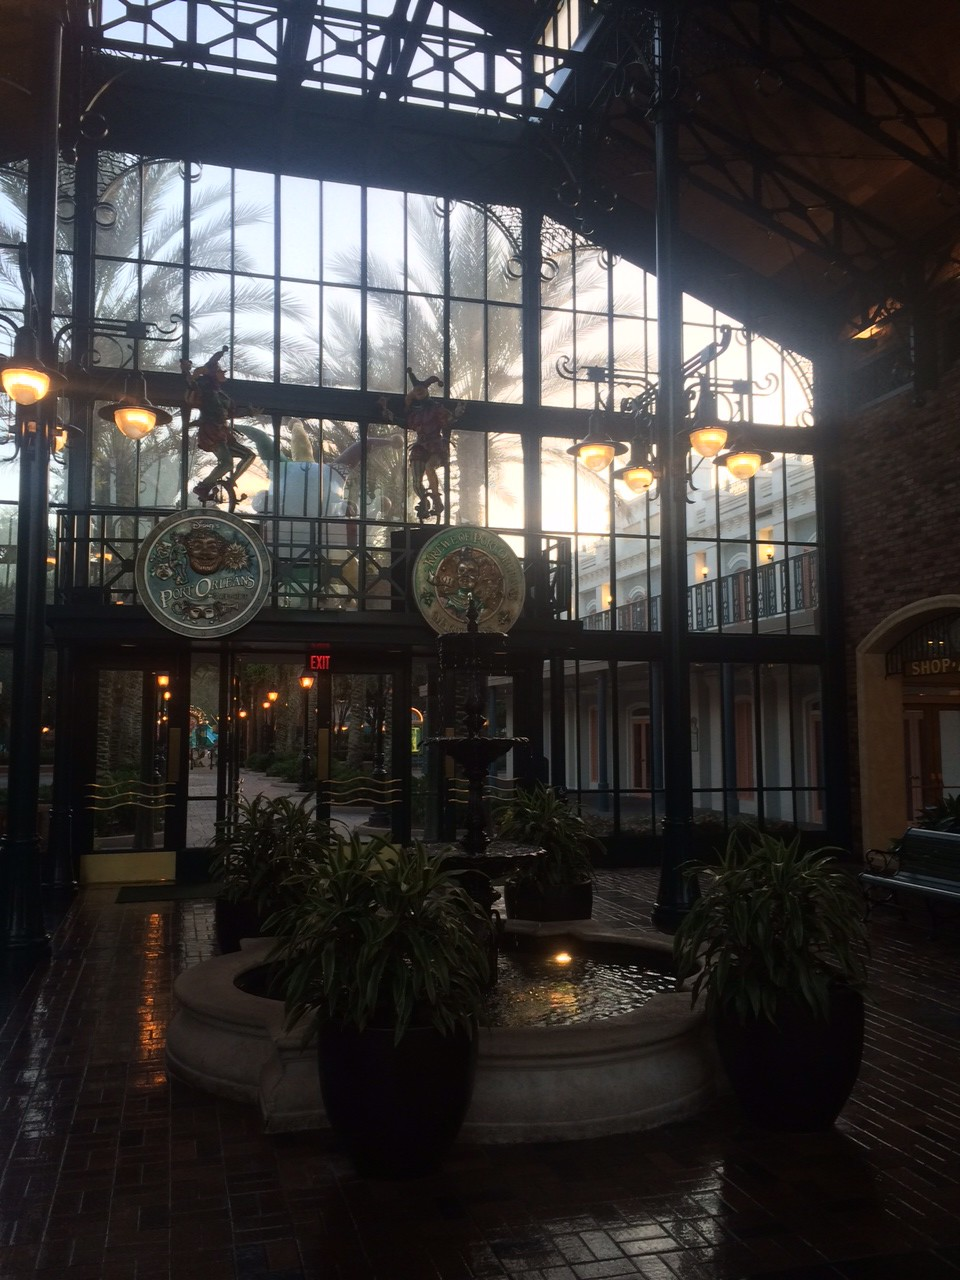 The huge lobby of the French Quarter